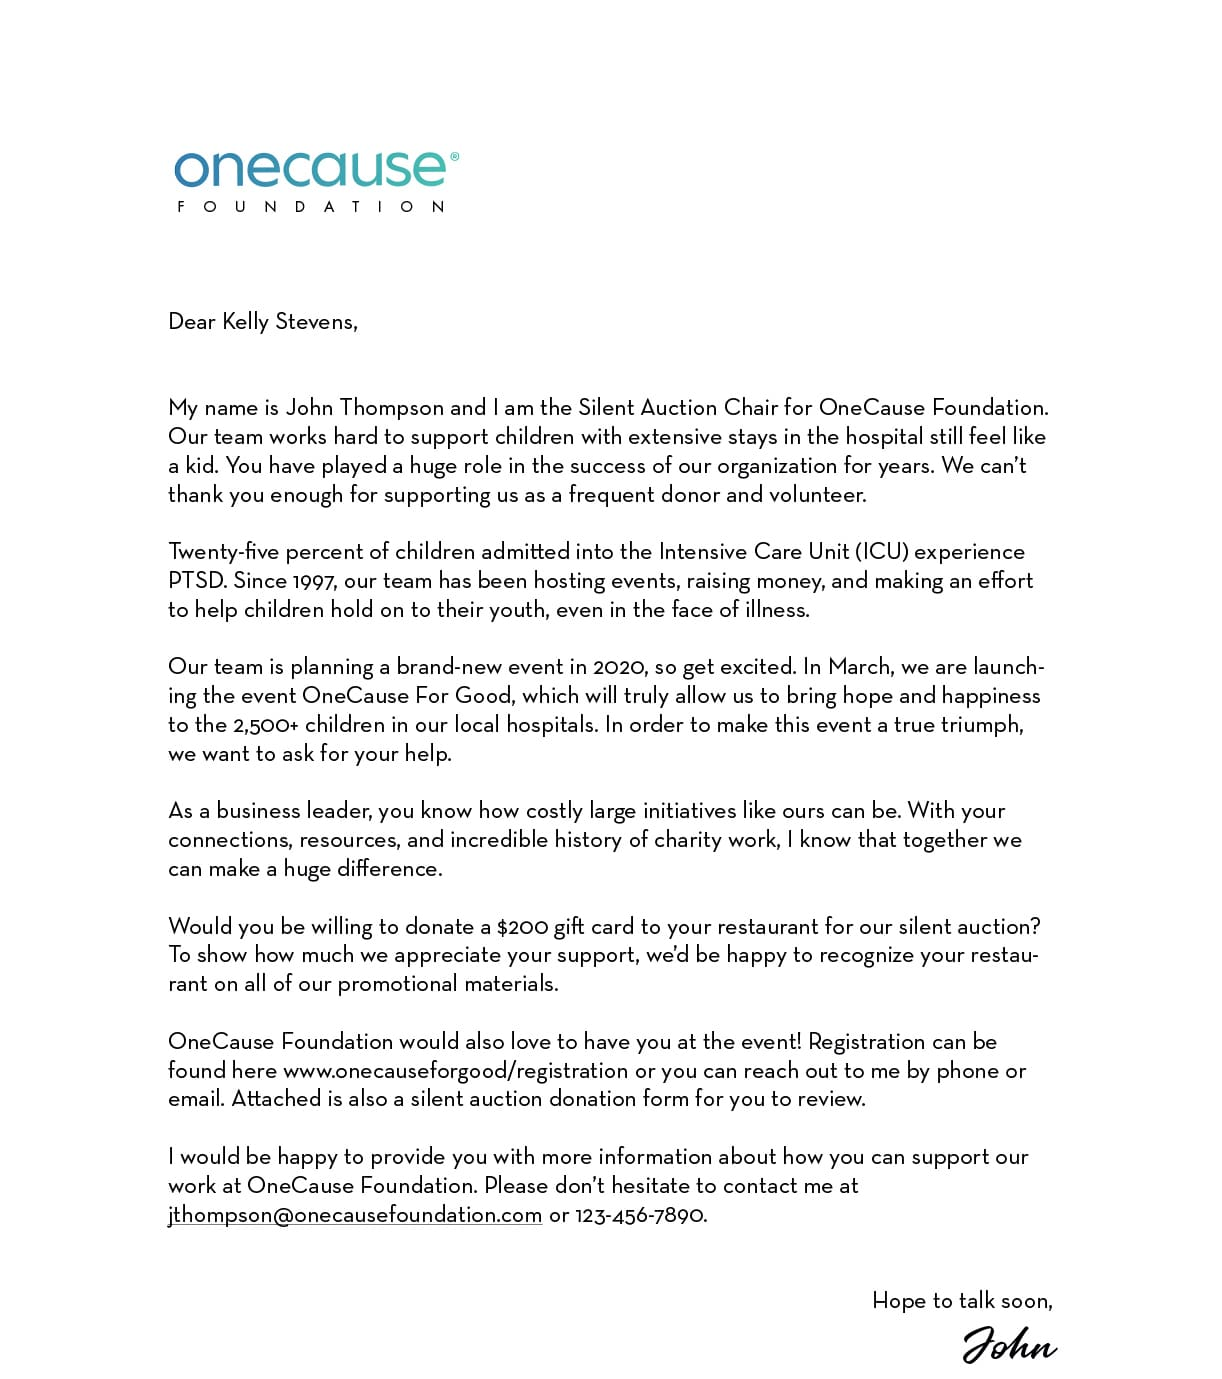 Sample Letter Requesting Child Support from www.onecause.com